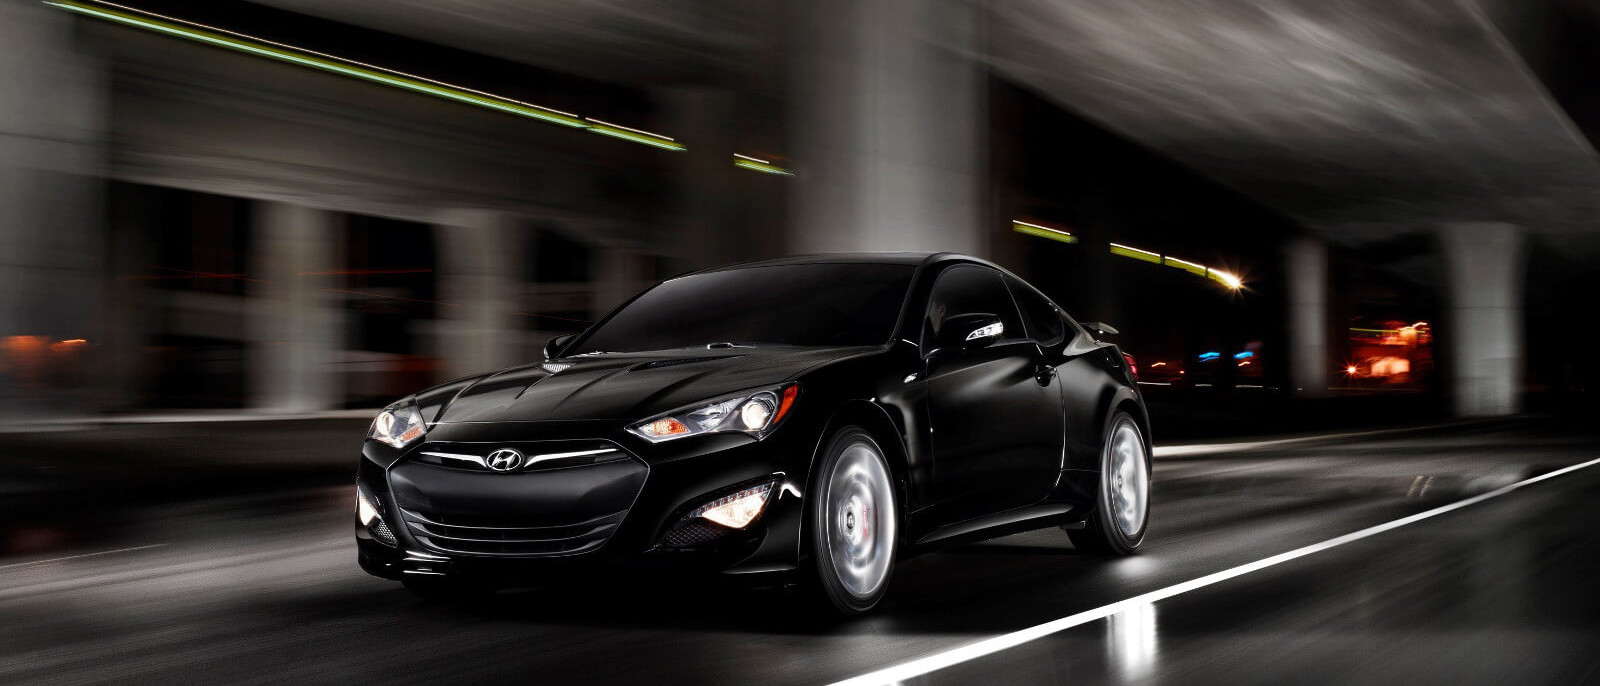 2016 Hyundai Genesis Coupe >> 2016 Hyundai Genesis Coupe From River City Hyundai